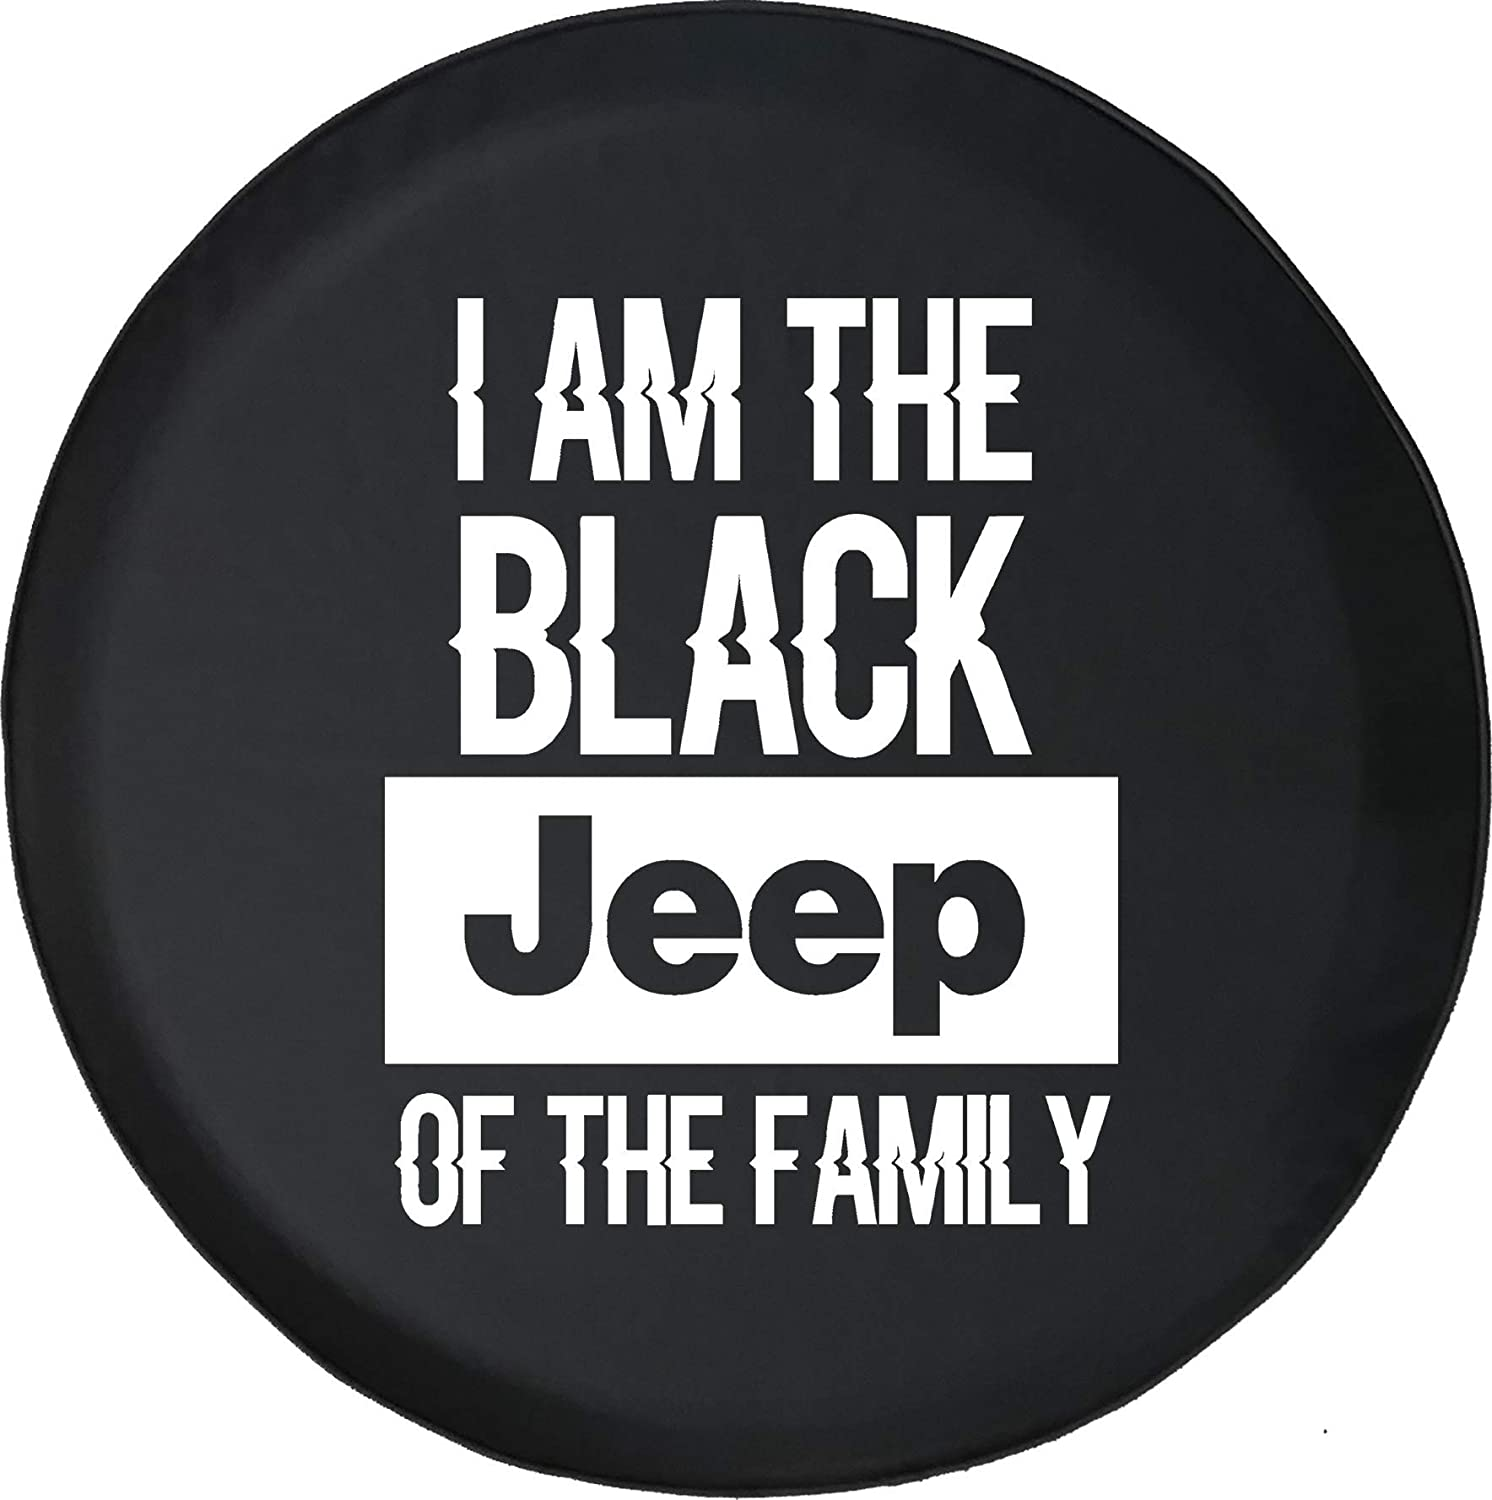 Fits: Jeep Wrangler Accessories, SUV, Camper and RV Spare Tire Cover Black Sheep of The Family 4x4 Black Size 33 Inch